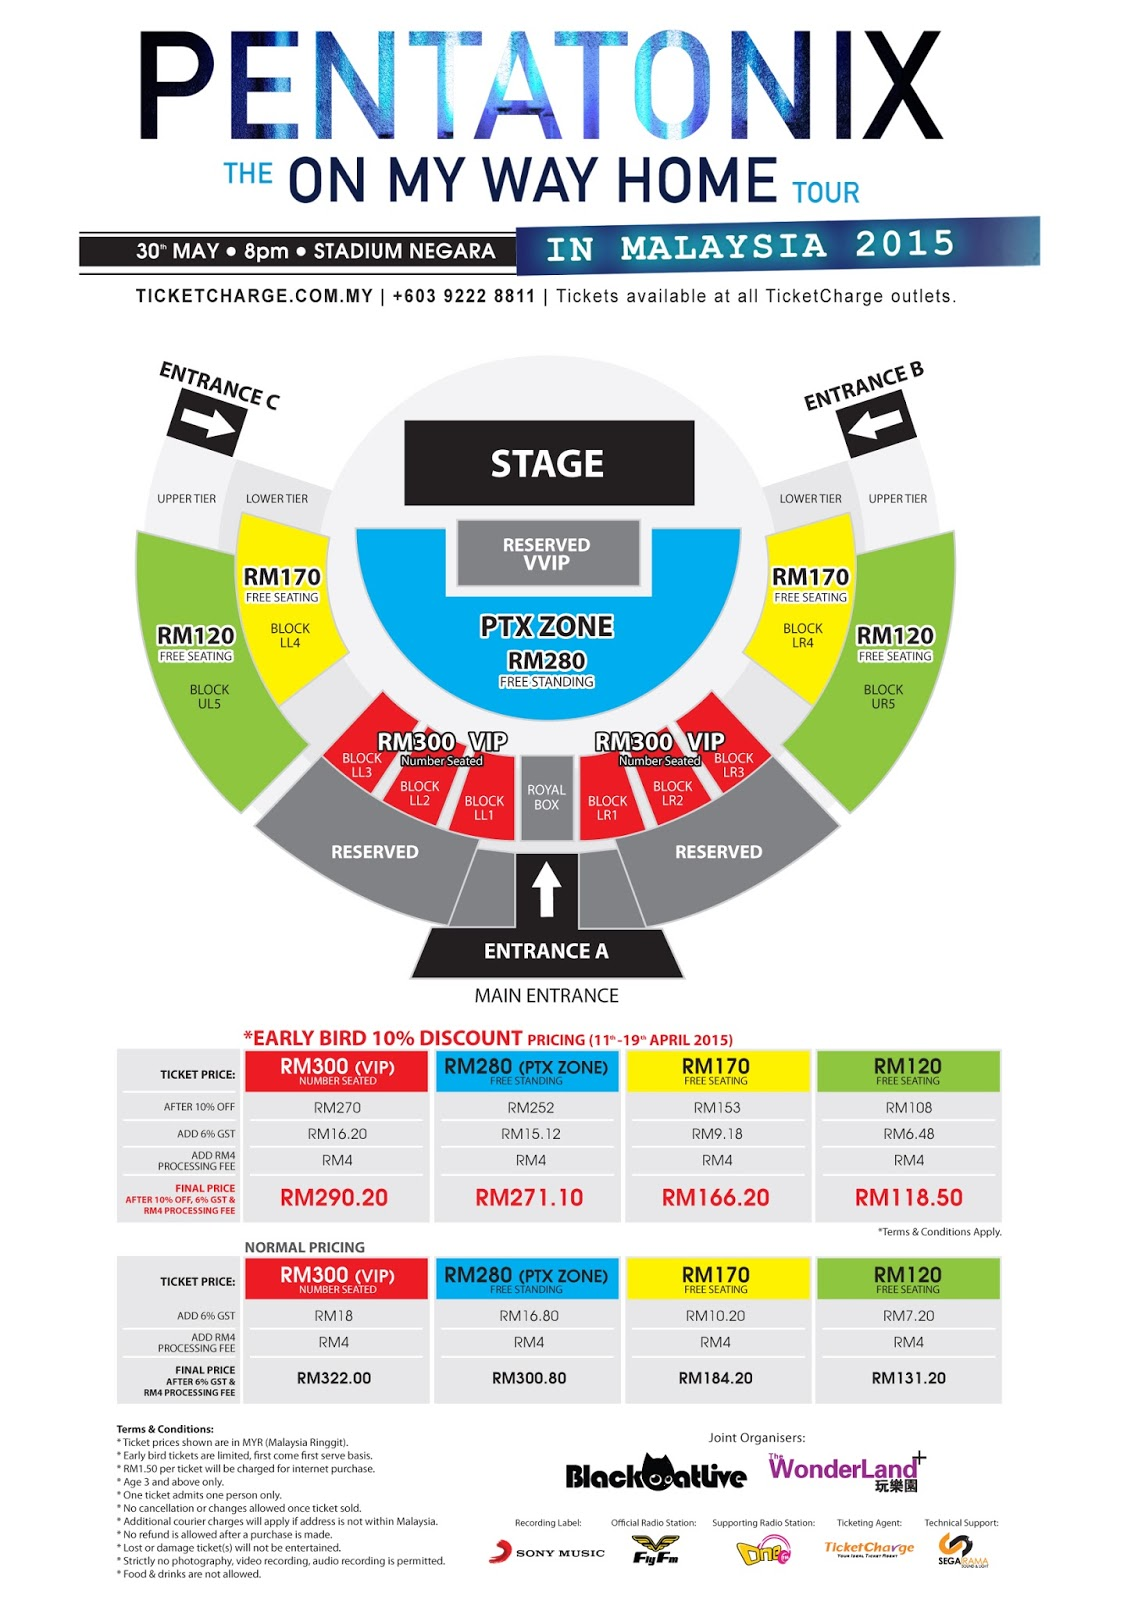 PENTATONIX Live in Malaysia 2015 - The On My Way Home Tour Seating Plan